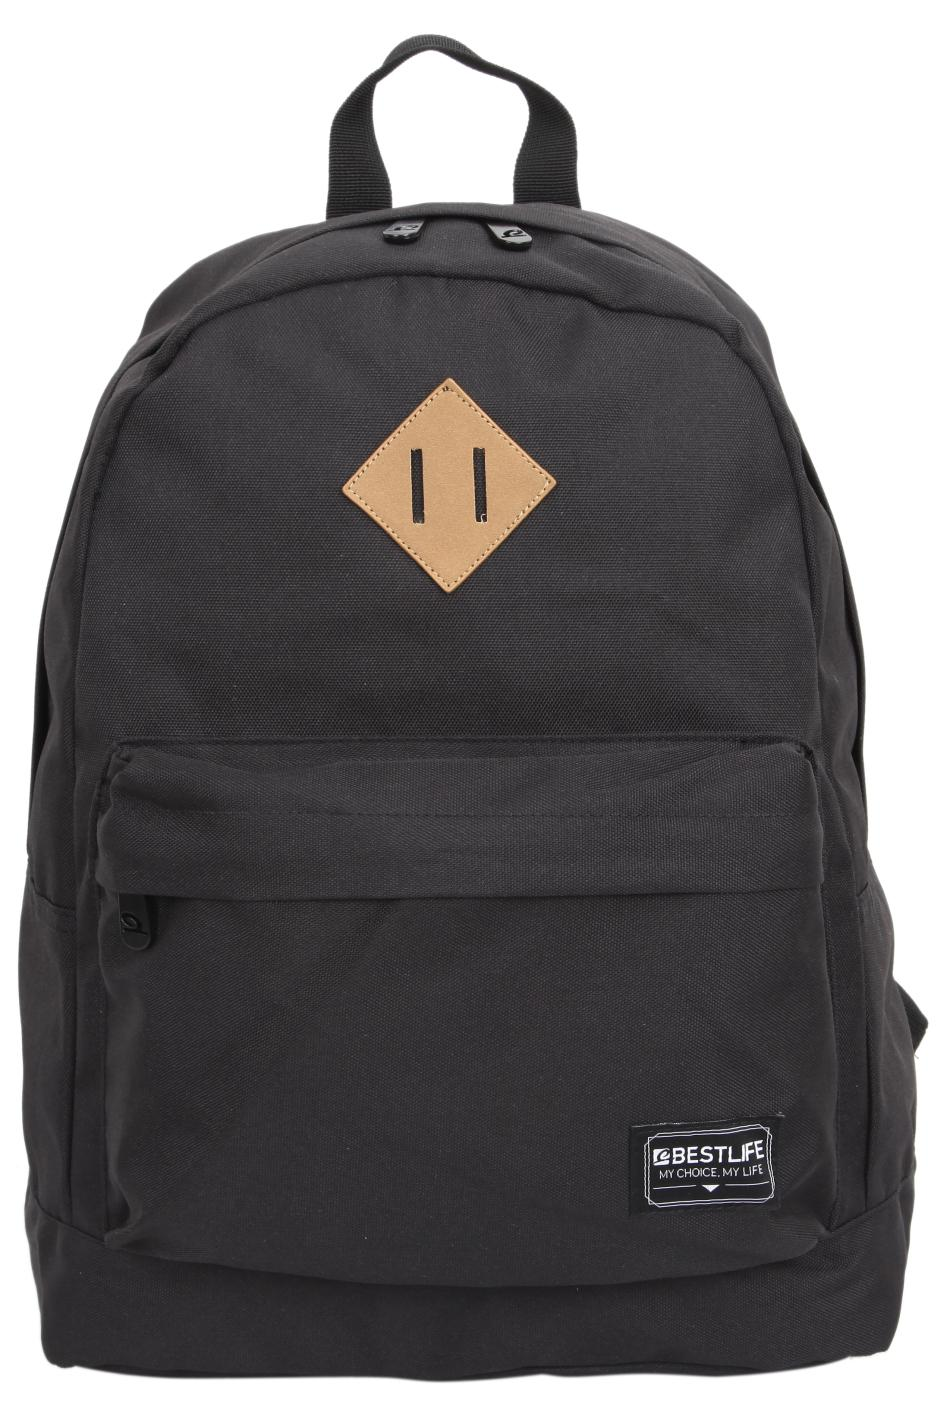 Best Backpacks For High School DSE9yDBr